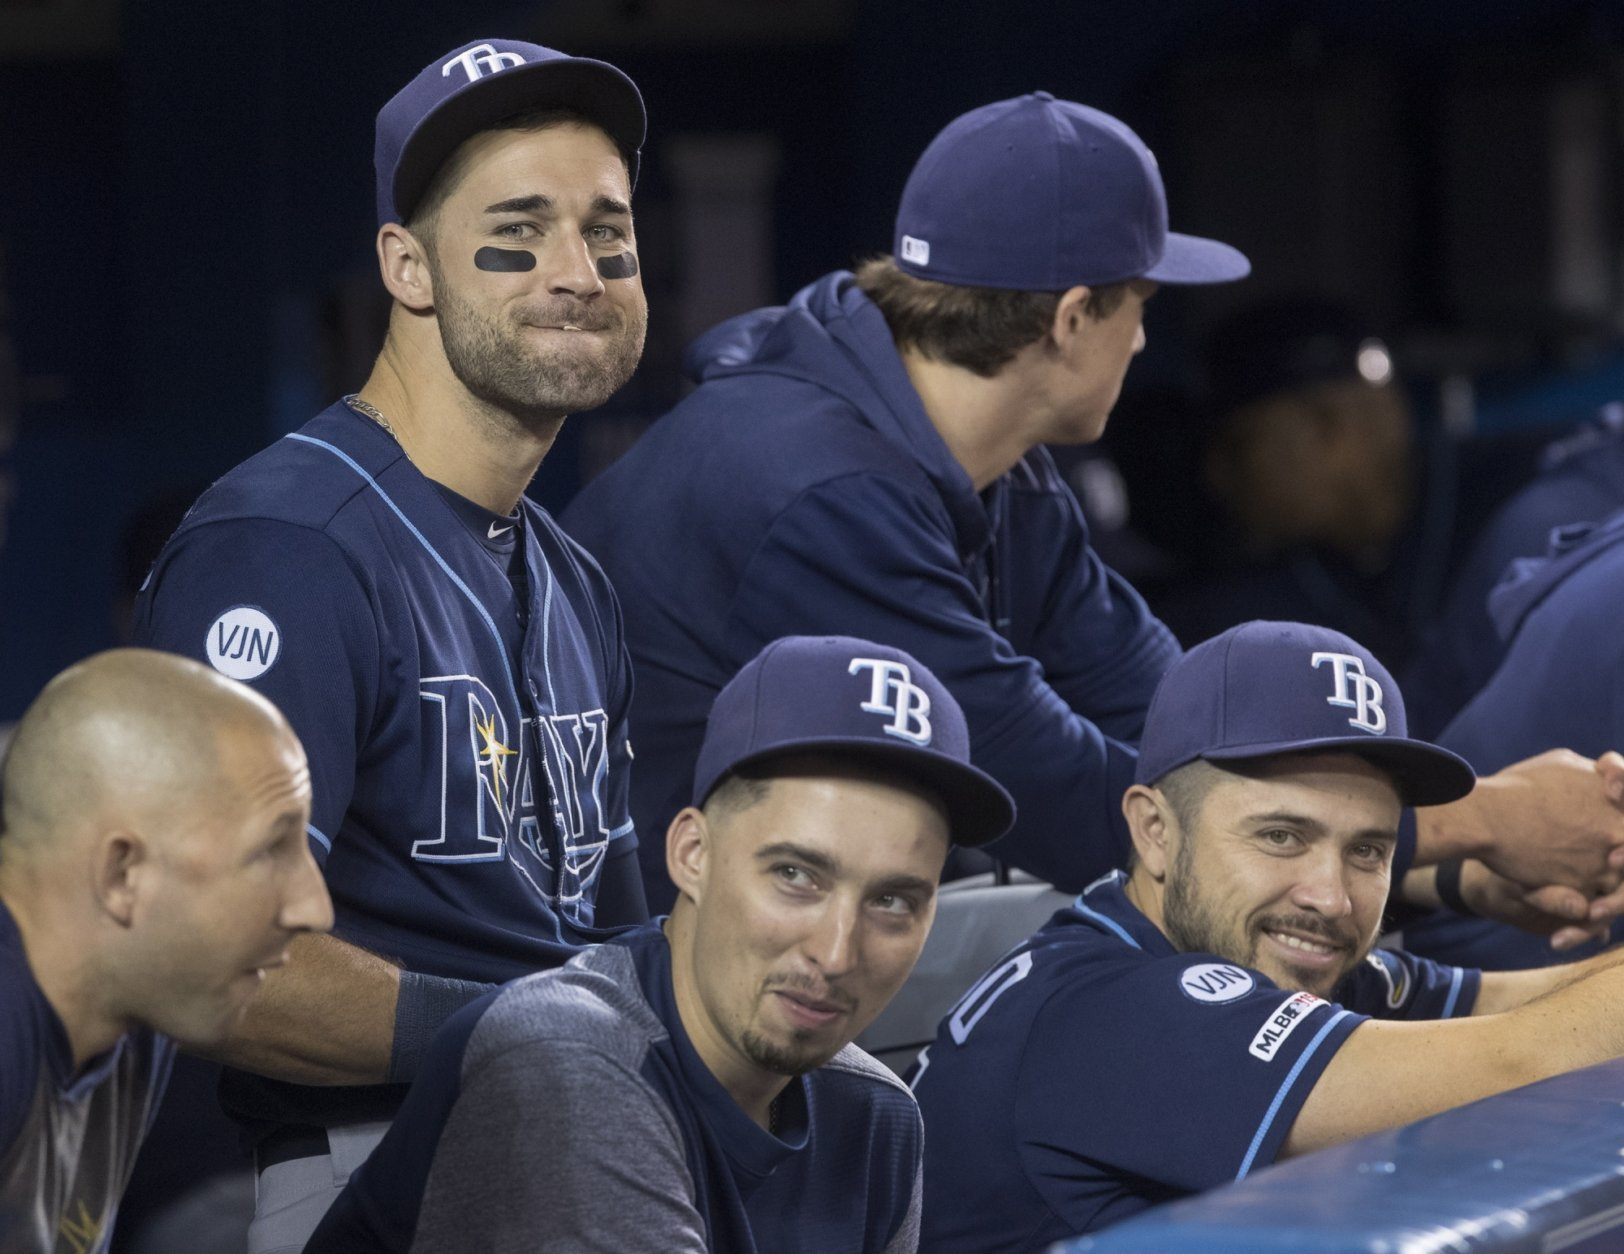 """<p><strong>Who They Are</strong></p> <p>Tampa Bay Rays (96-66), AL Wild Card 2</p> <p><strong>Why They're Fun</strong></p> <p>Go ahead, name four Rays. Did you know they've got both a Yandy and a Yonny? Did you know they have a <a href=""""https://wtop.com/mlb/2017/07/is-baseballs-two-way-player-revolution-upon-us/"""" target=""""_blank"""" rel=""""noopener"""">two-way player actually pitching and hitting</a>? The Rays are a treasure chest of fun facts just waiting for America to discover them.</p> <p><strong>A Guy to Know</strong></p> <p>Austin Meadows and Tyler Glasnow. Yes, that's two guys. Yes, that's cheating, but I'm justifying it because they've been the team's best hitter (team-leading 33 HR, 143 OPS+) and pitcher (1.78 ERA, 0.89 WHIP in 12 starts) and because the Rays got BOTH of them for Chris Archer. Poor Pirates.</p> <p><strong>Potential Difference-maker</strong></p> <p>The Rays have 10 walk-off wins including eight since Aug. 6 and three in their final six-game homestand. They've played 19 extra-inning games, most in baseball, and won 11 of them.</p> <p><strong>Potential Downfall</strong></p> <p>The Rays are bucking the home run trend of 2019. They've hit the fewest of any playoff team and have allowed the fewest in all of baseball (181). Combined with the lowest staff ERA in the AL (3.65), the pitching staff's ability to shut down the prolific playoff offenses will make or break the Rays' chances.</p> <p style=""""text-align: center;""""><strong>National League</strong></p>"""